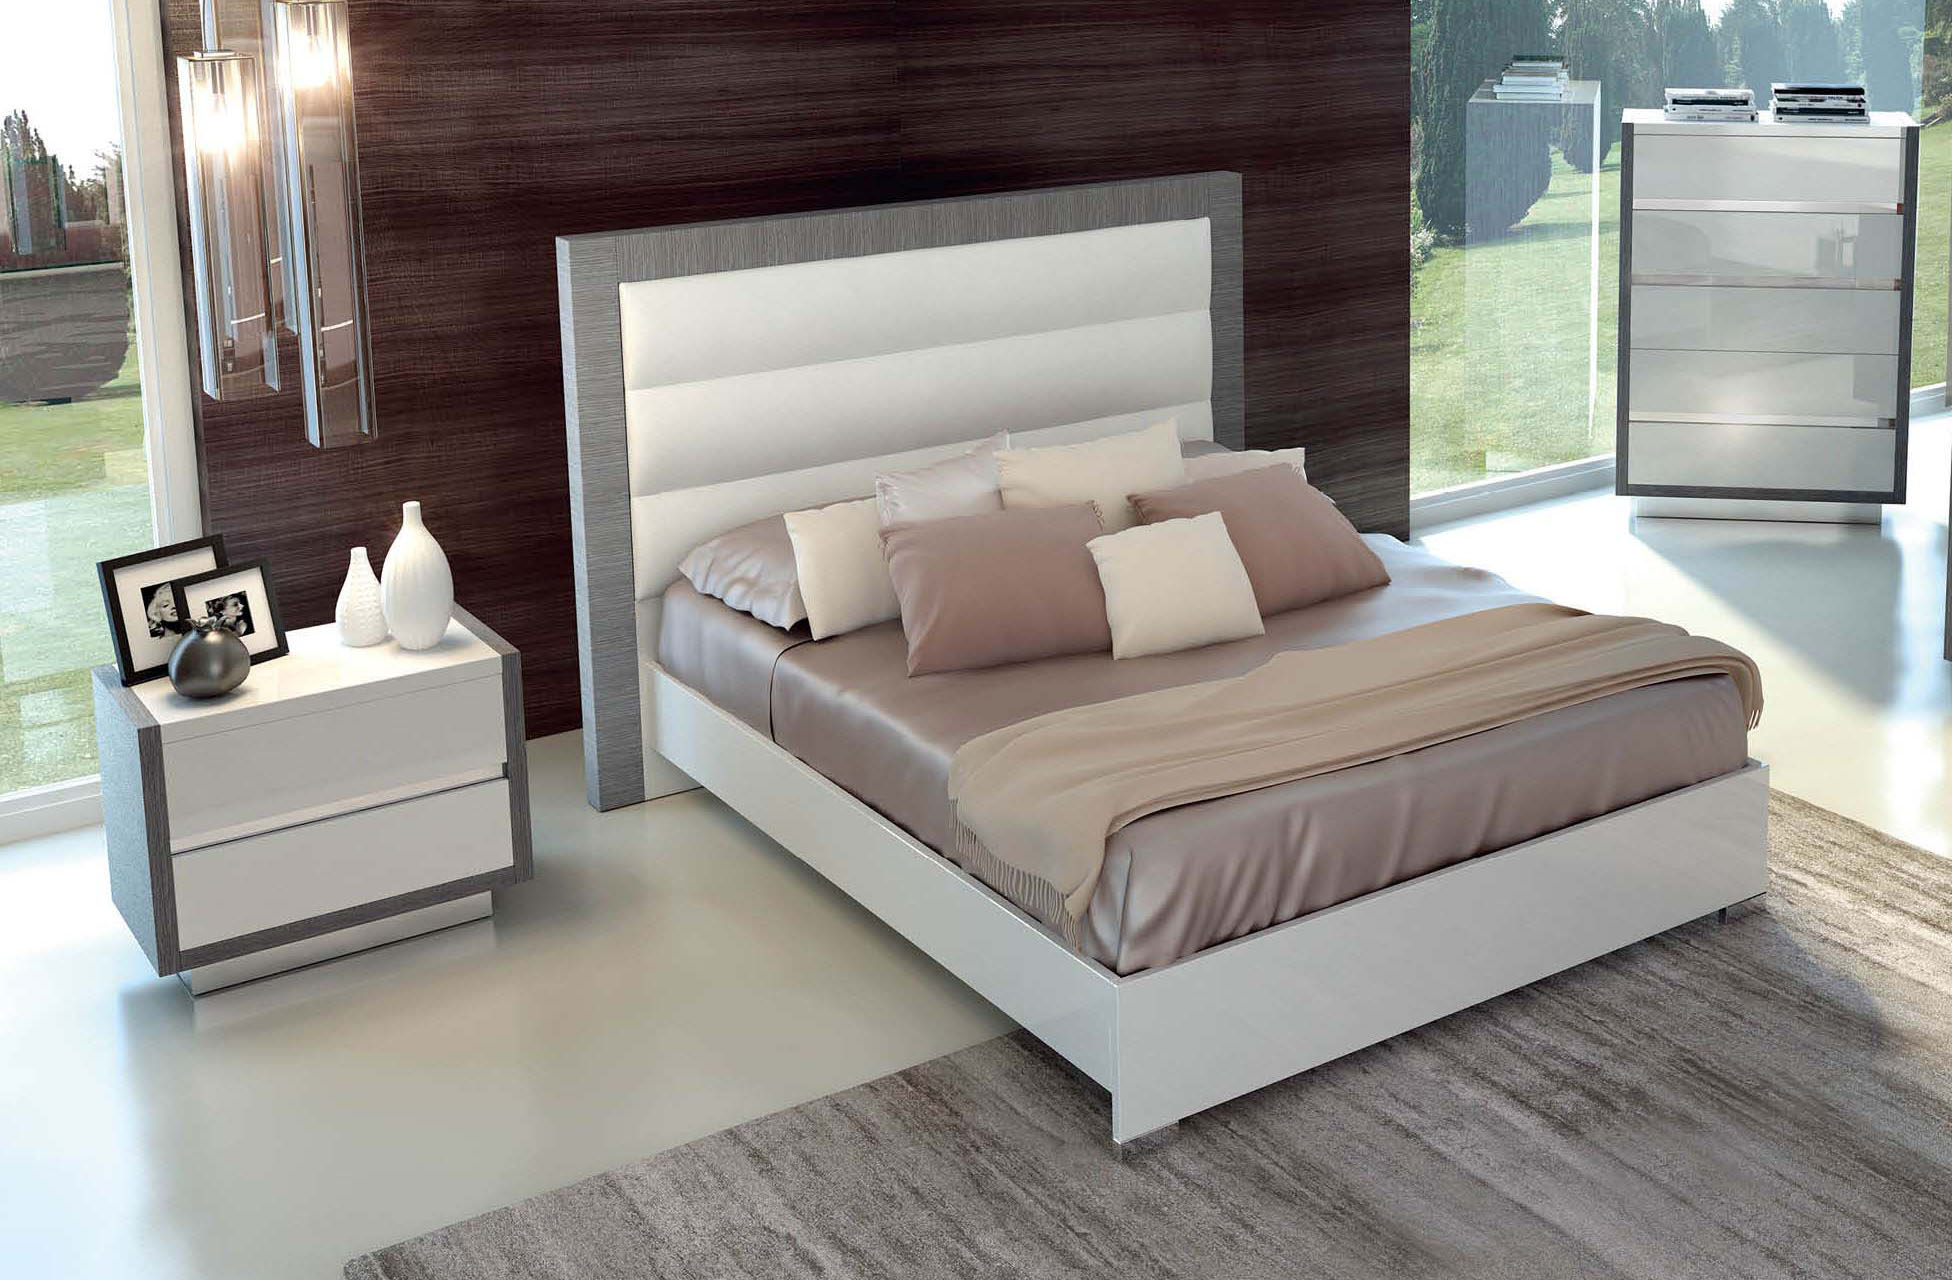 Lacquered made in italy wood luxury platform bed memphis tennessee esf mangano - Luxury platform beds ...